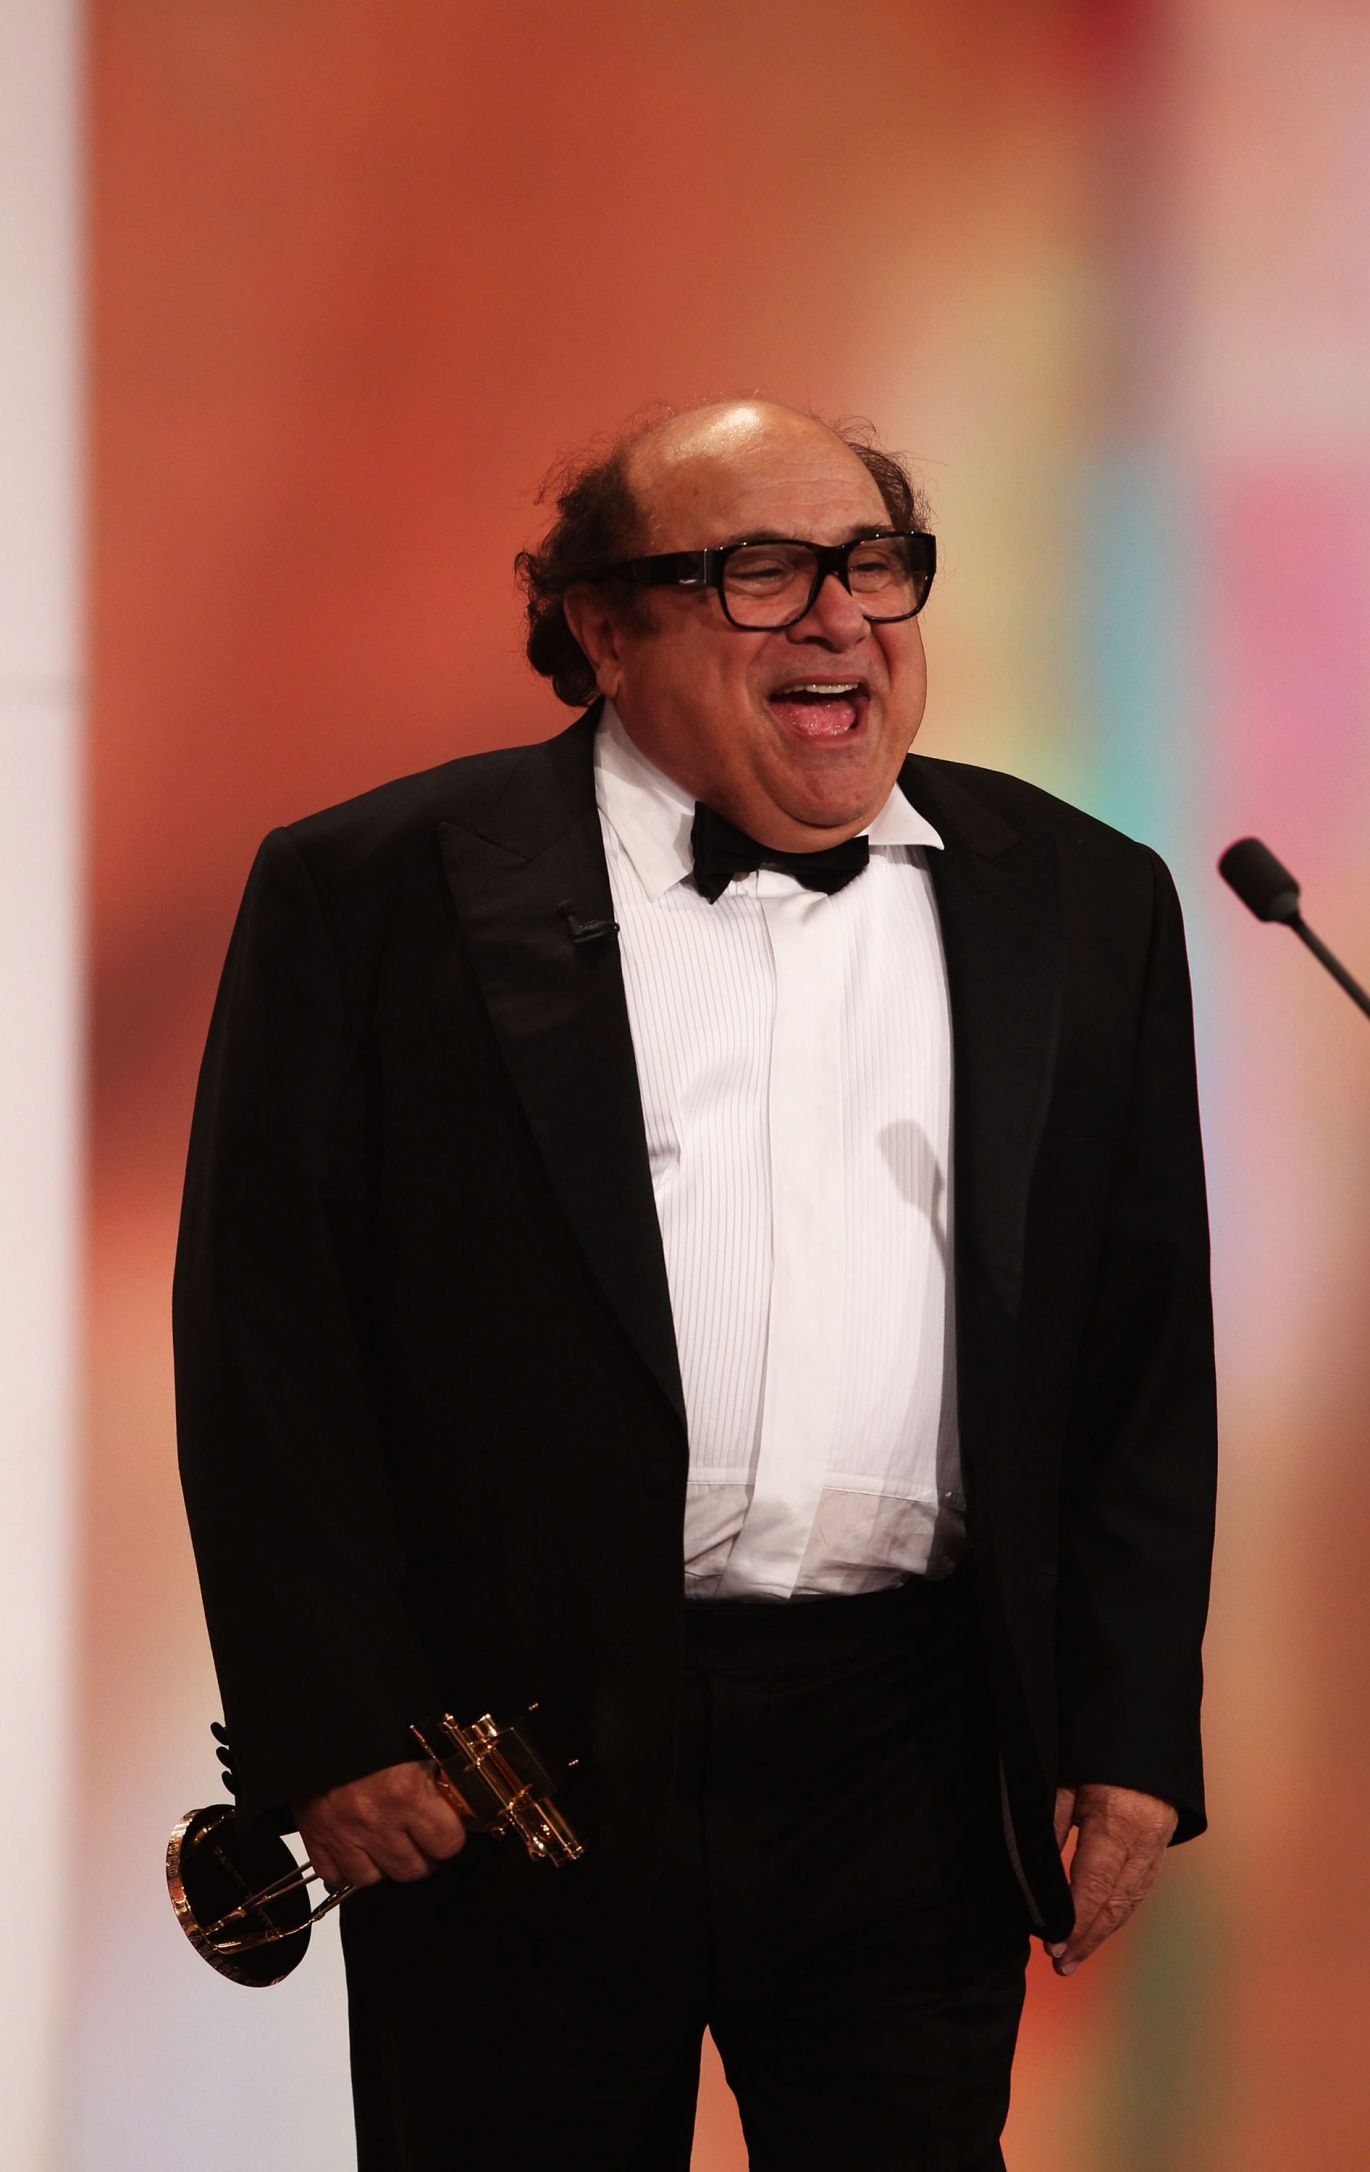 Danny Devito Wallpapers High Quality | Download Free